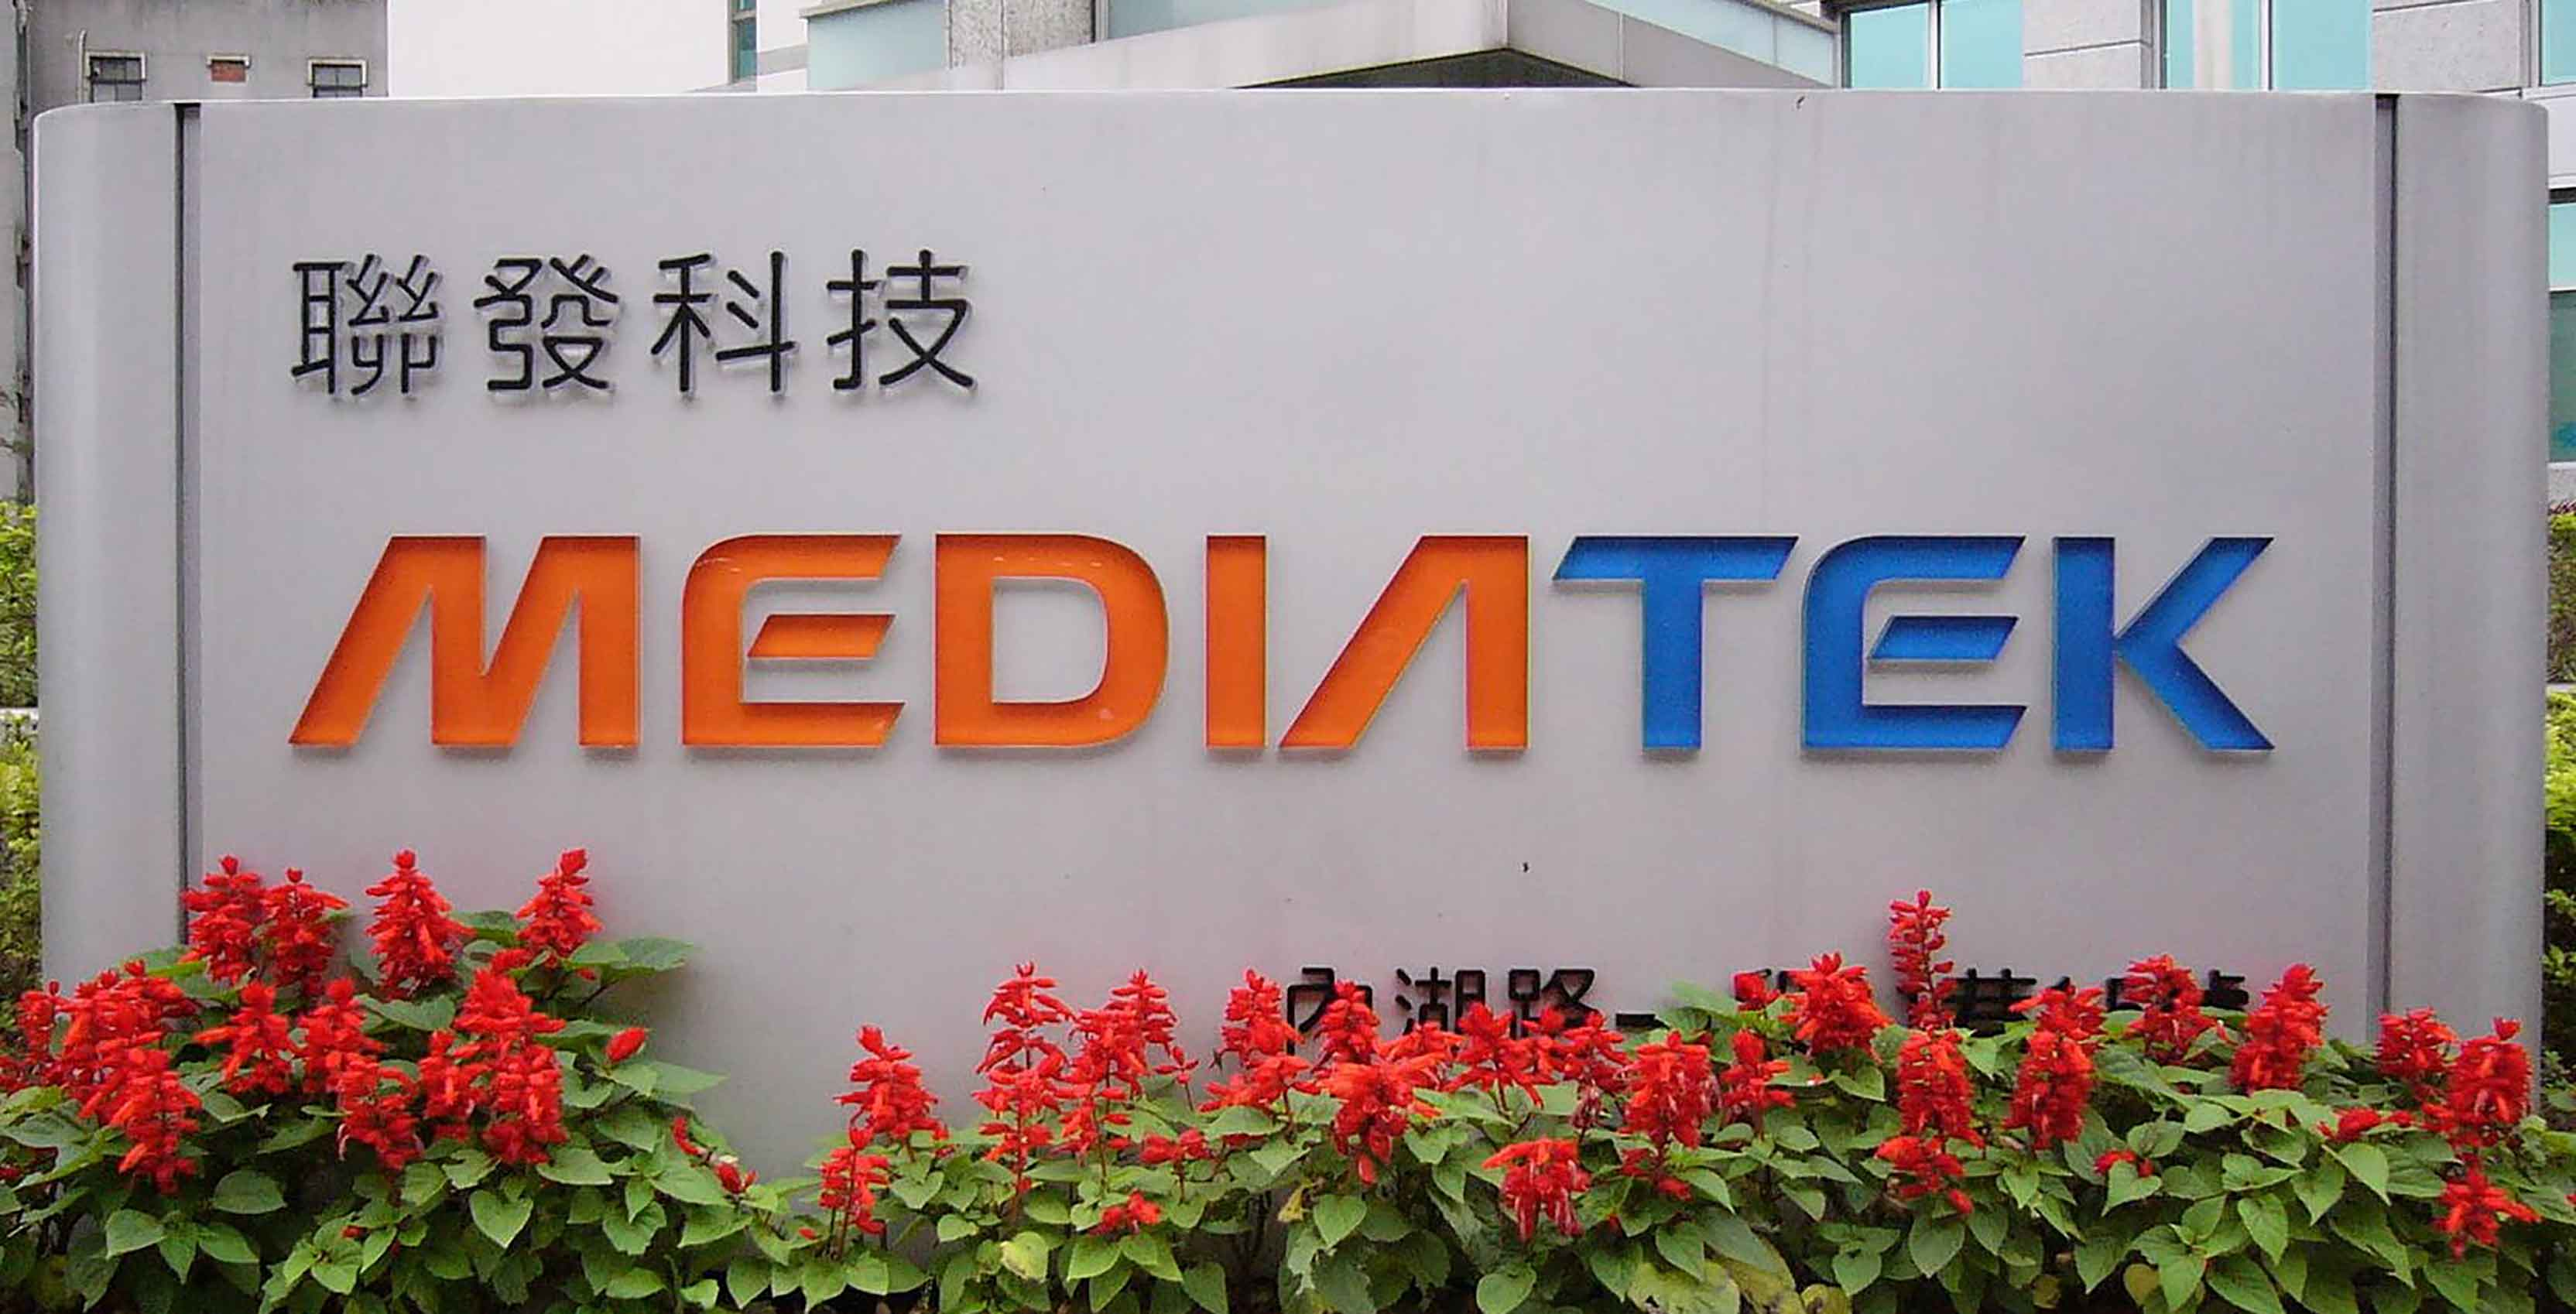 MediaTek sign